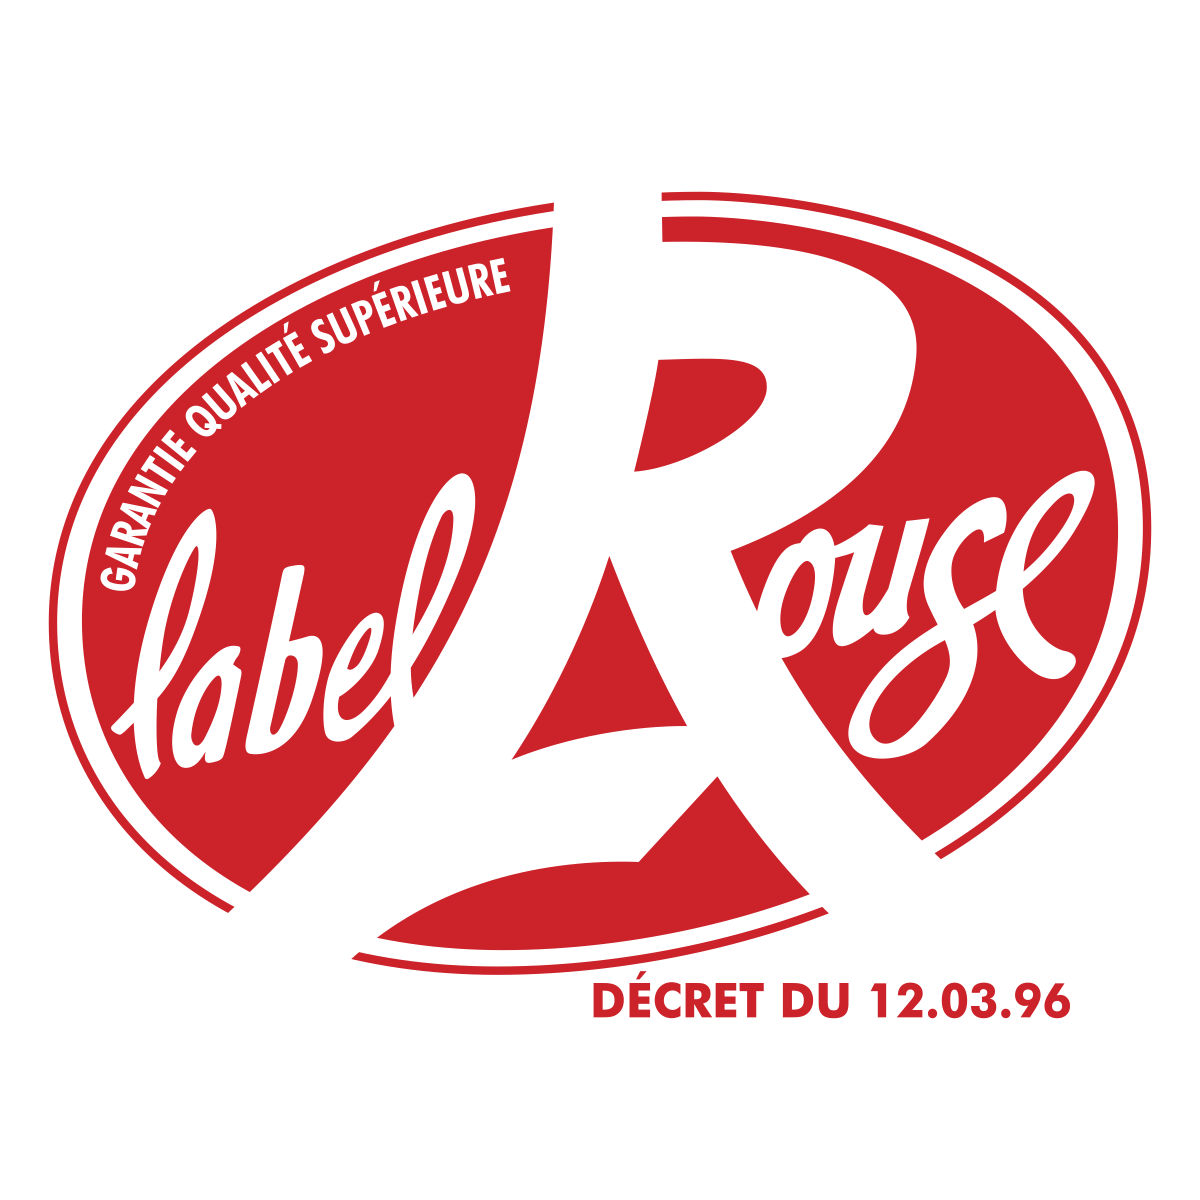 label-rouge-logo-png-transparent.png